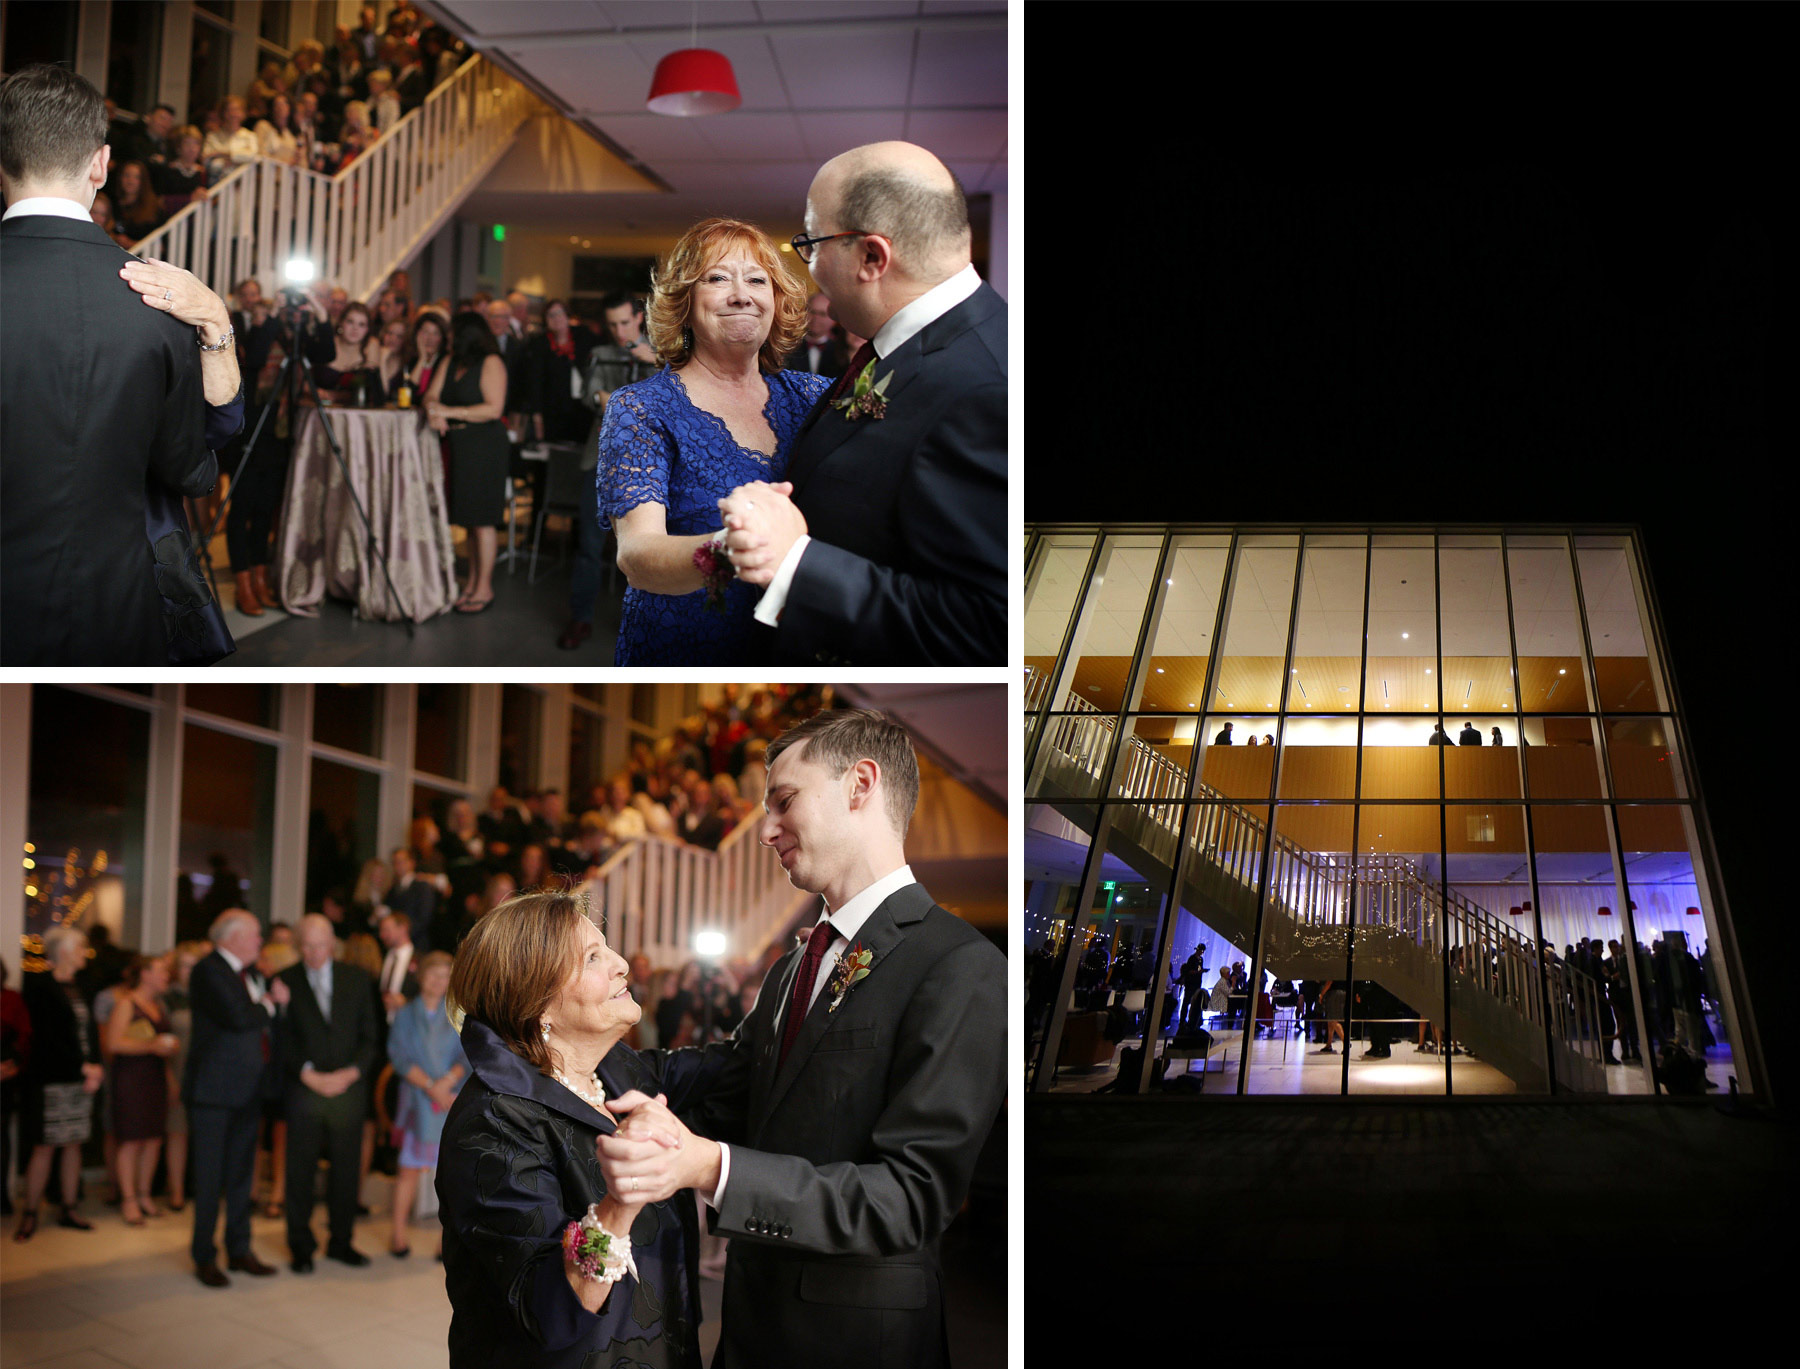 25-Minneapolis-Minnesota-Wedding-Photographer-by-Andrew-Vick-Photography-Fall-Autumn-American-Swedish-Institute-Reception-Groom-Dance-Mother-Parents-Ben-and-Adam.jpg